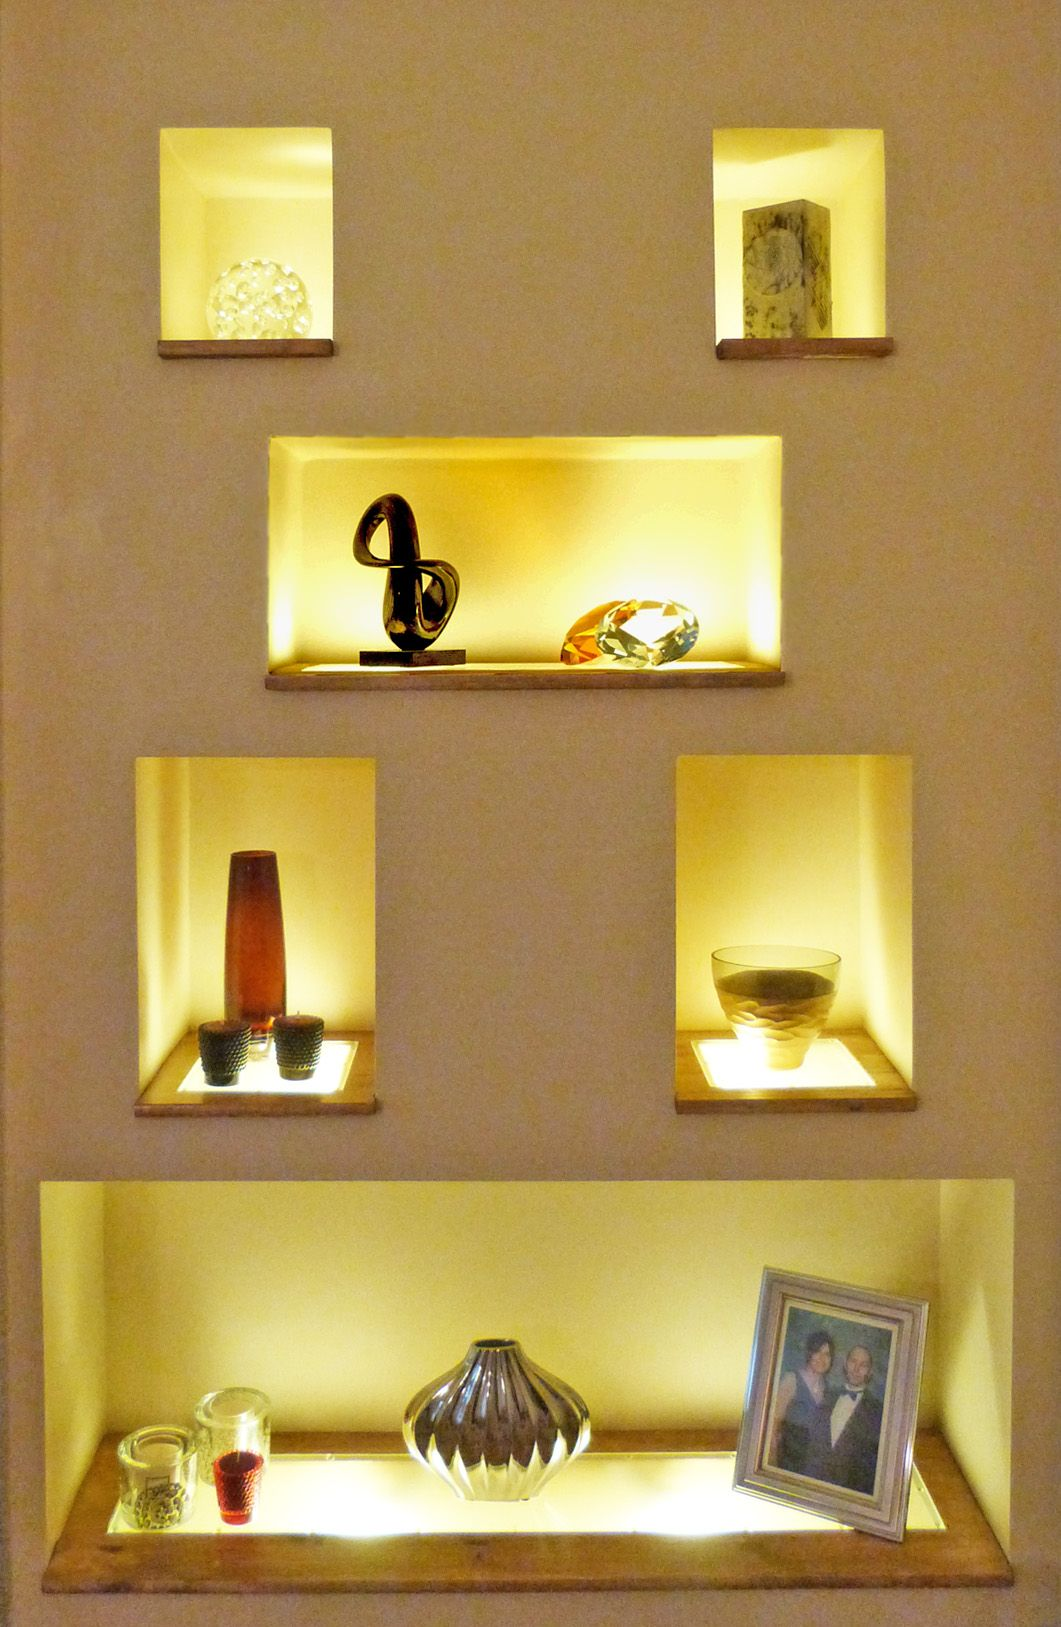 recessed alcove lighting google search interiors pinterest alcove lights and living rooms. Black Bedroom Furniture Sets. Home Design Ideas